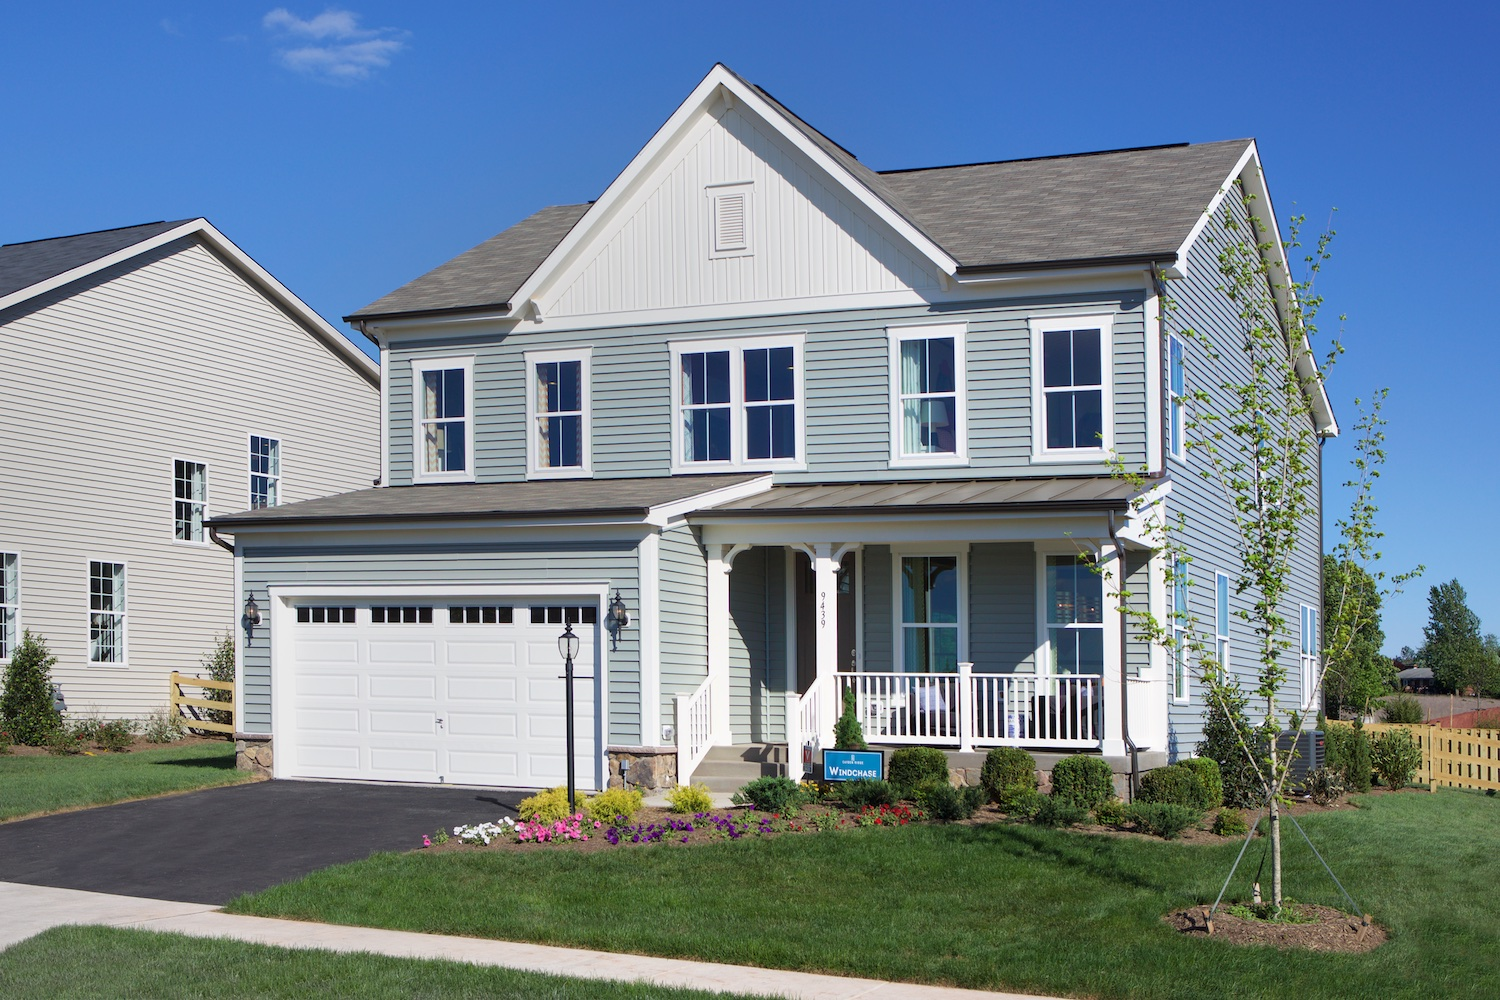 Single Family for Sale at Cayden Ridge-Windchase 9434 Brightstar Manassas, Virginia 20111 United States